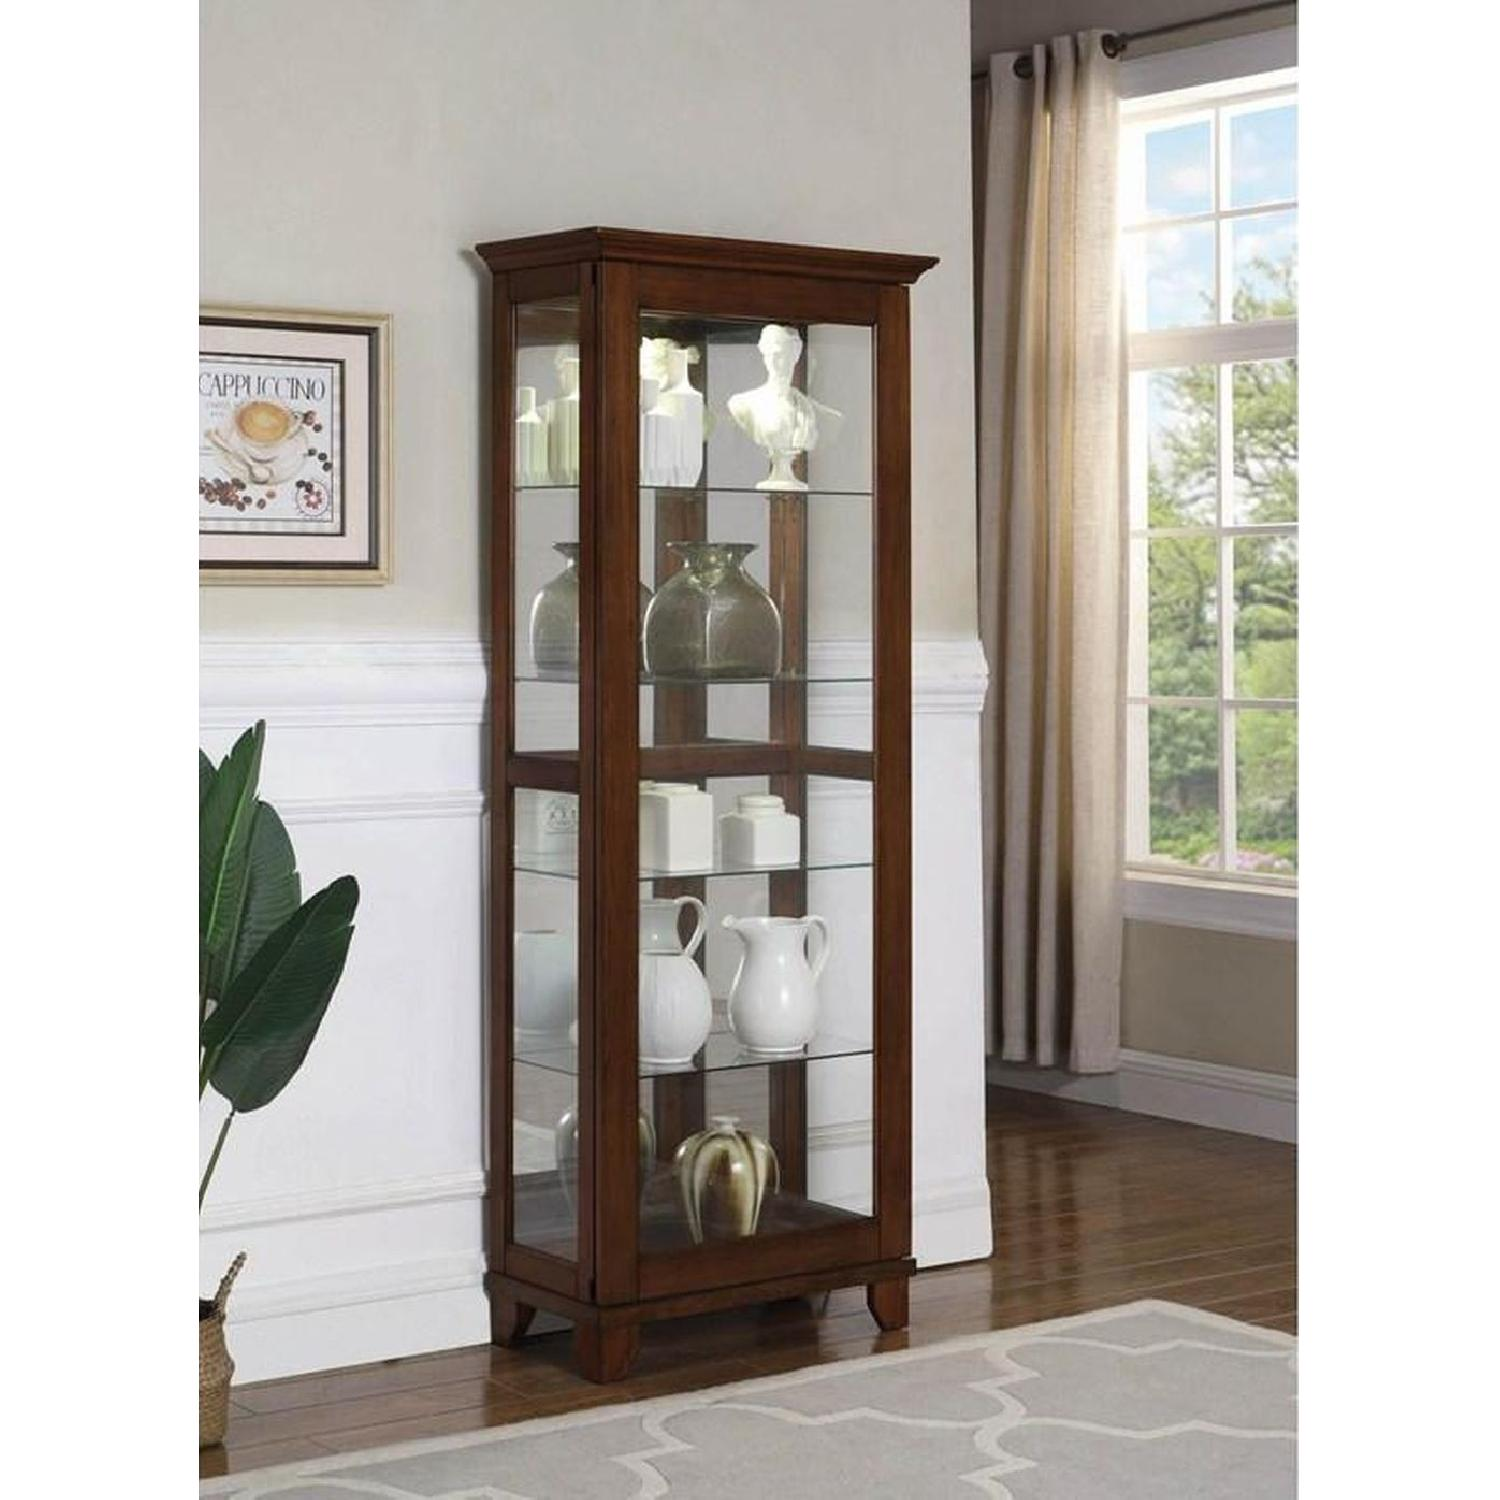 Curio Cabinet in Chestnut Finish w/ Glass Panels - image-3